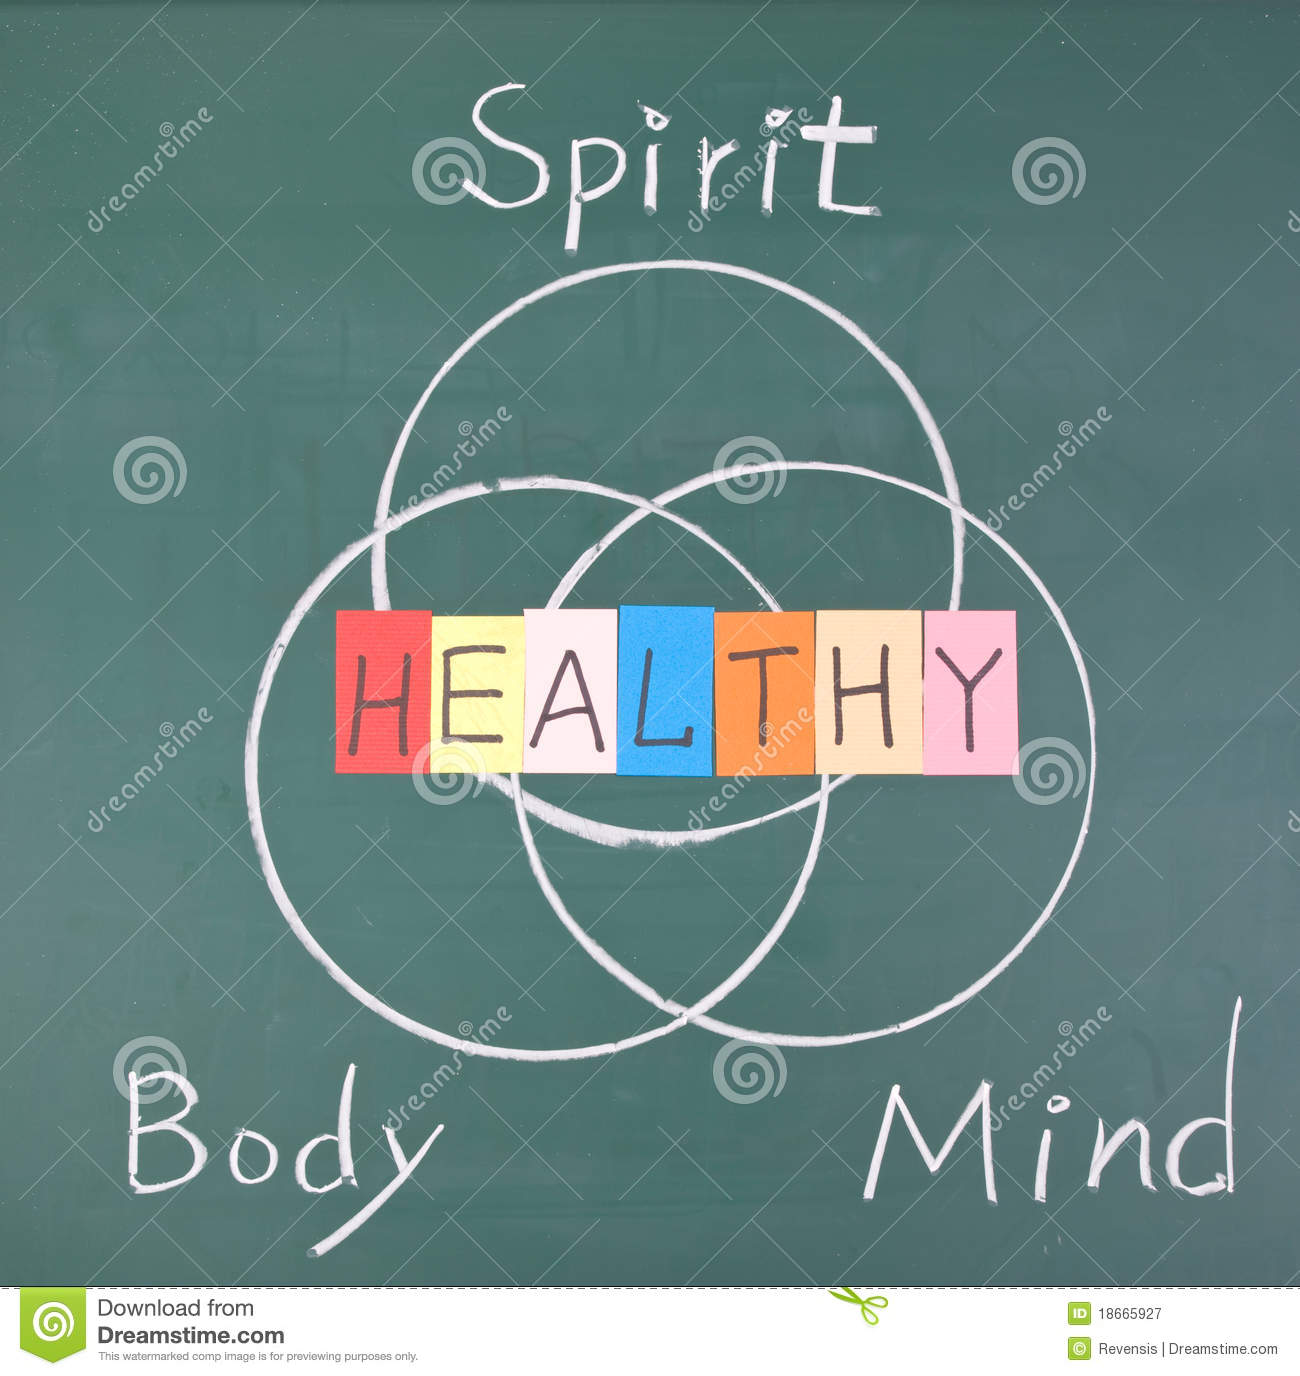 Healthy Concept Spirit Body And Mind Stock Image  Image Of  Healthy Concept Spirit Body And Mind